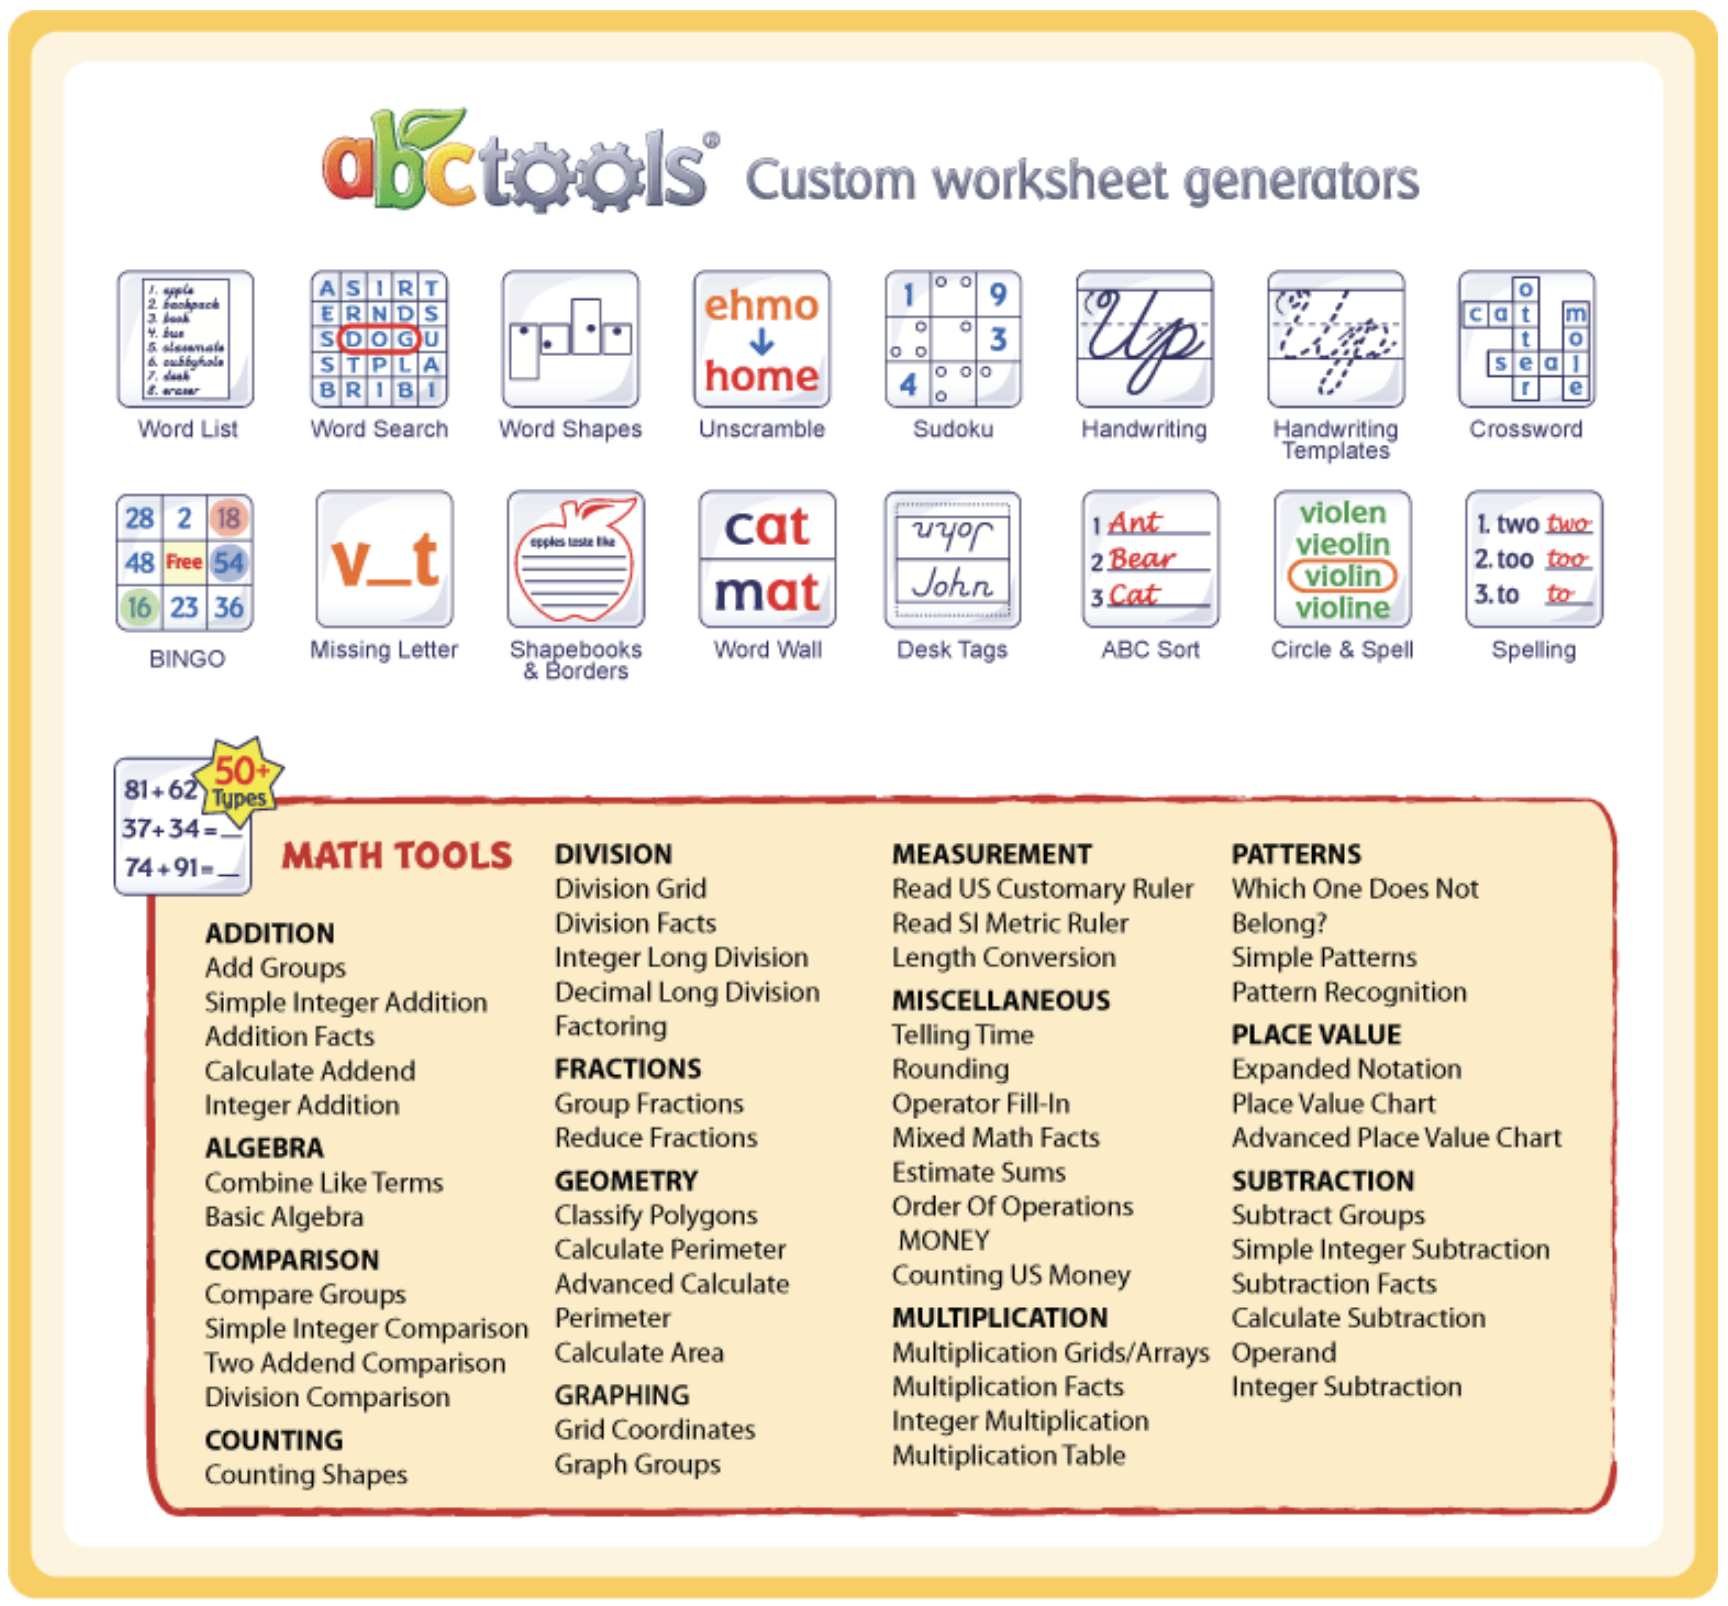 abctools